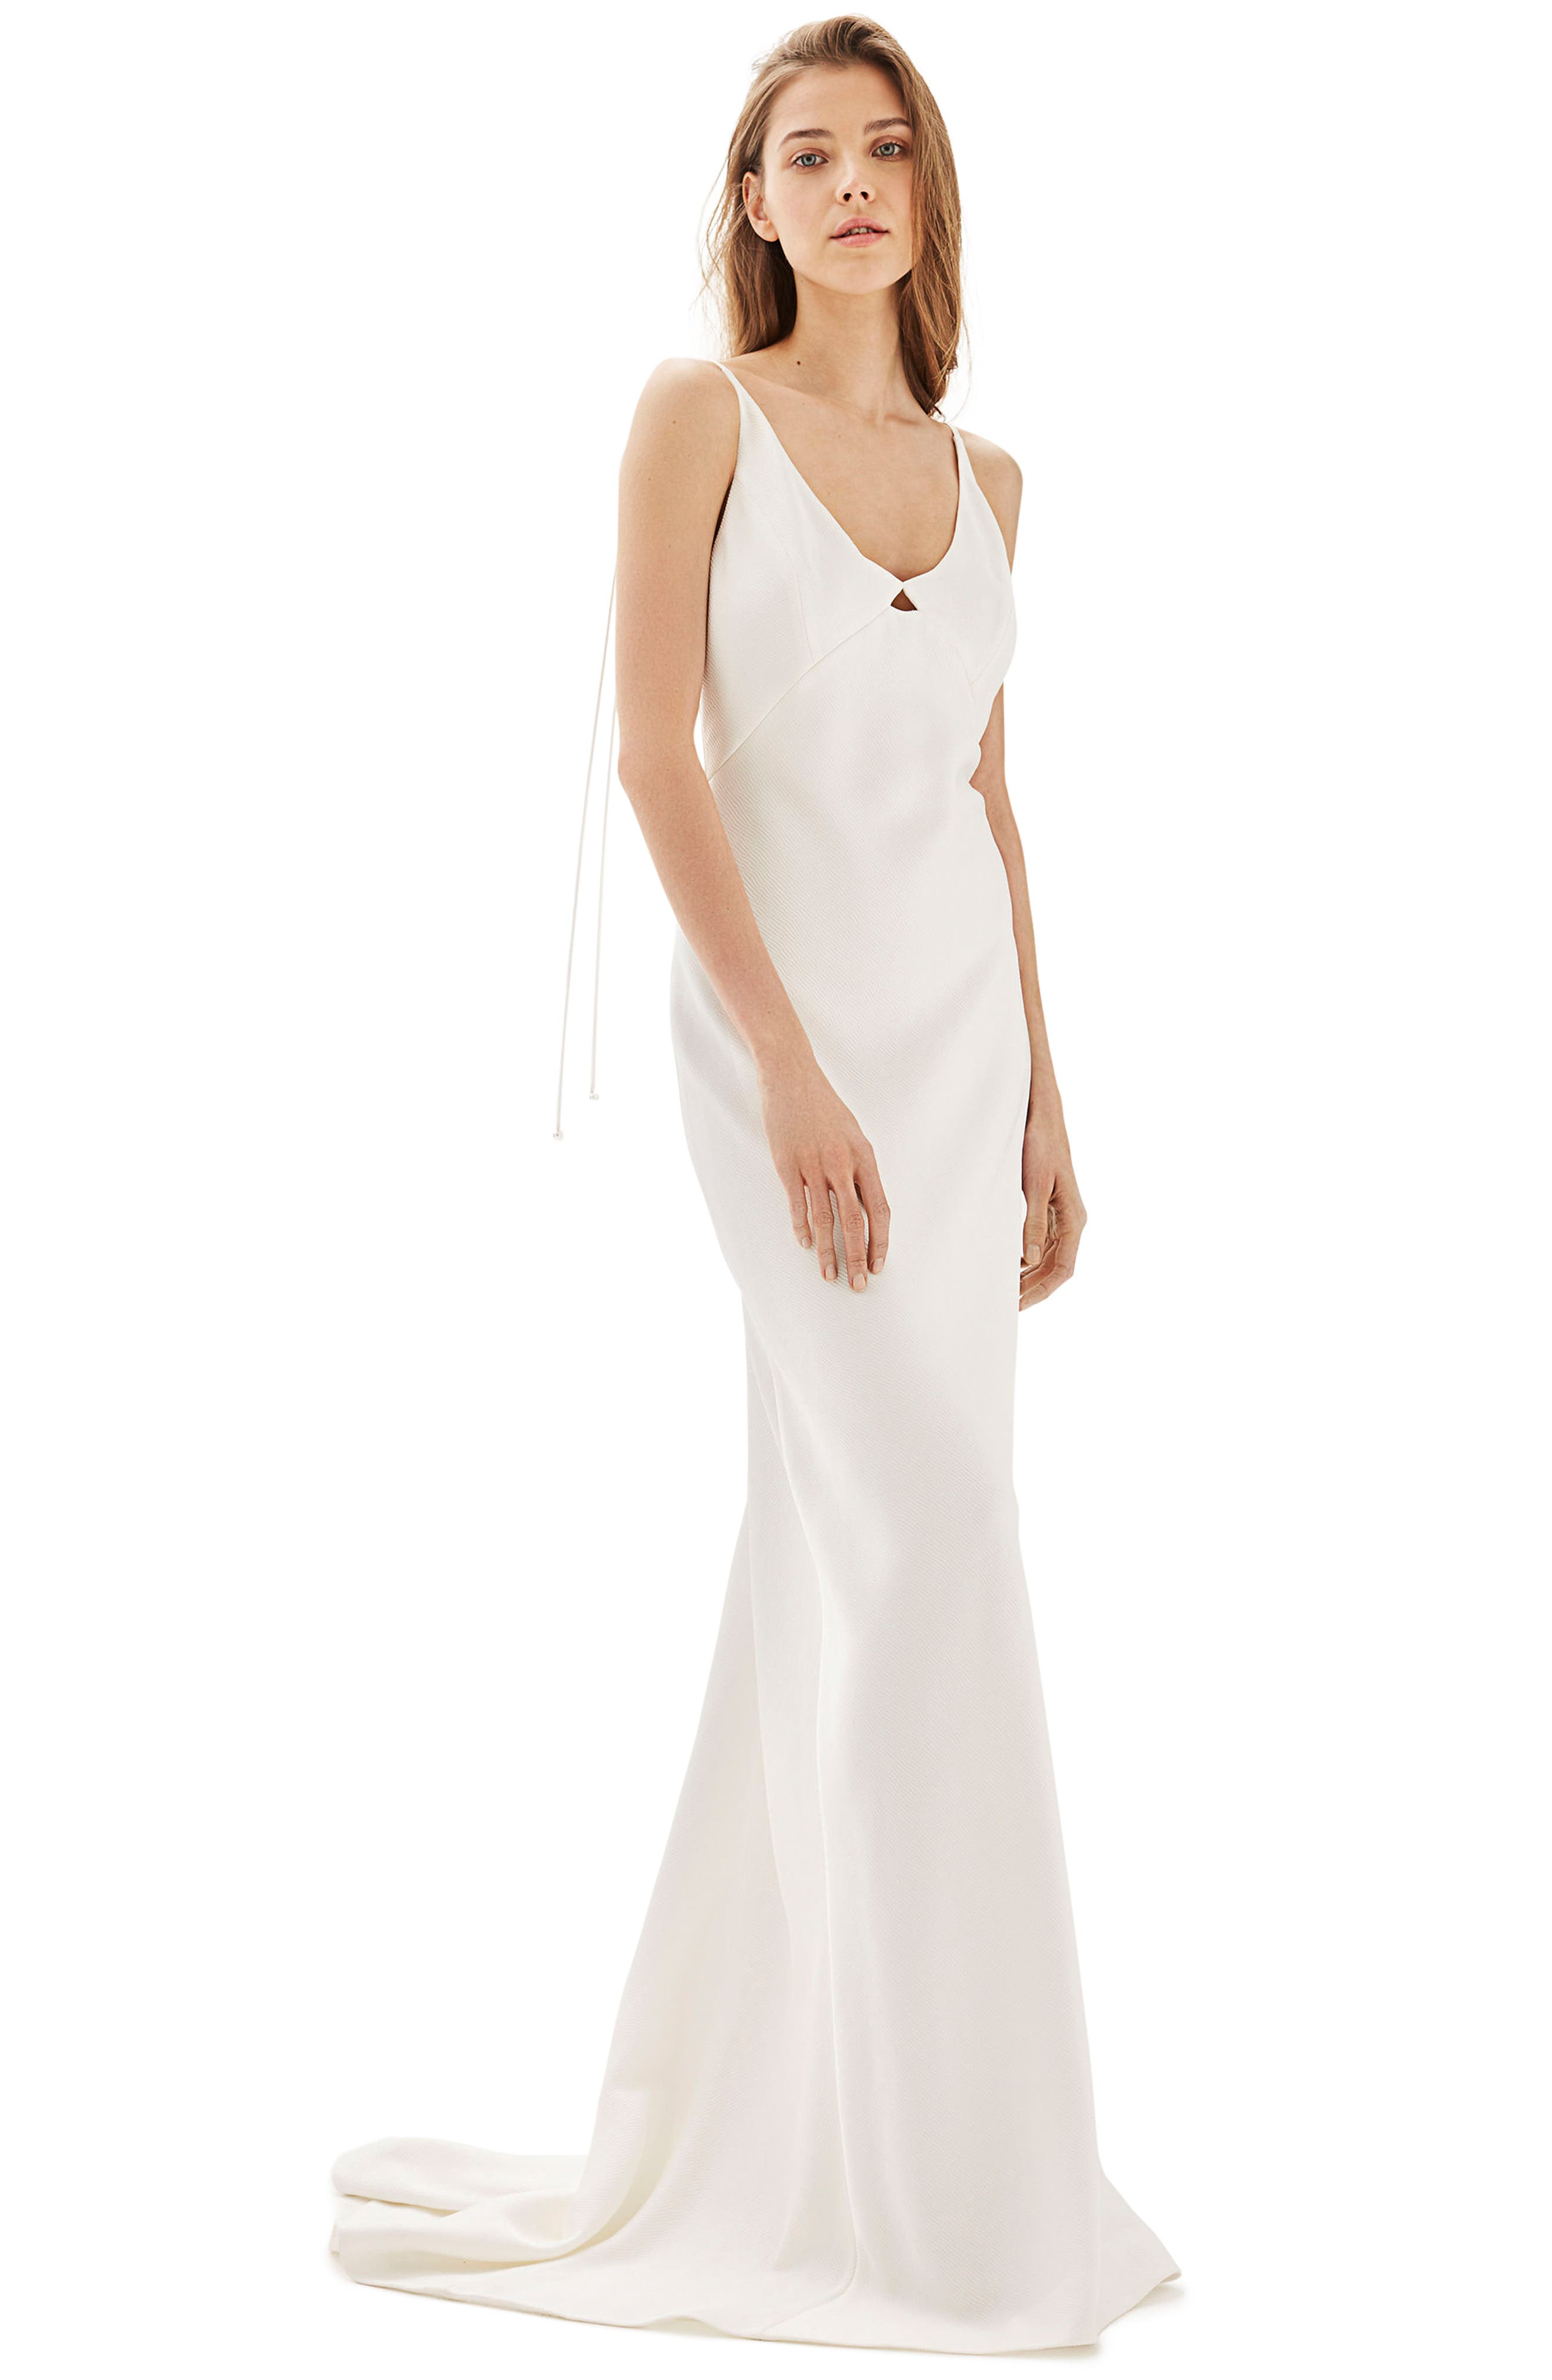 Bride V-Neck Satin Sheath Gown,                             Main thumbnail 1, color,                             Ivory